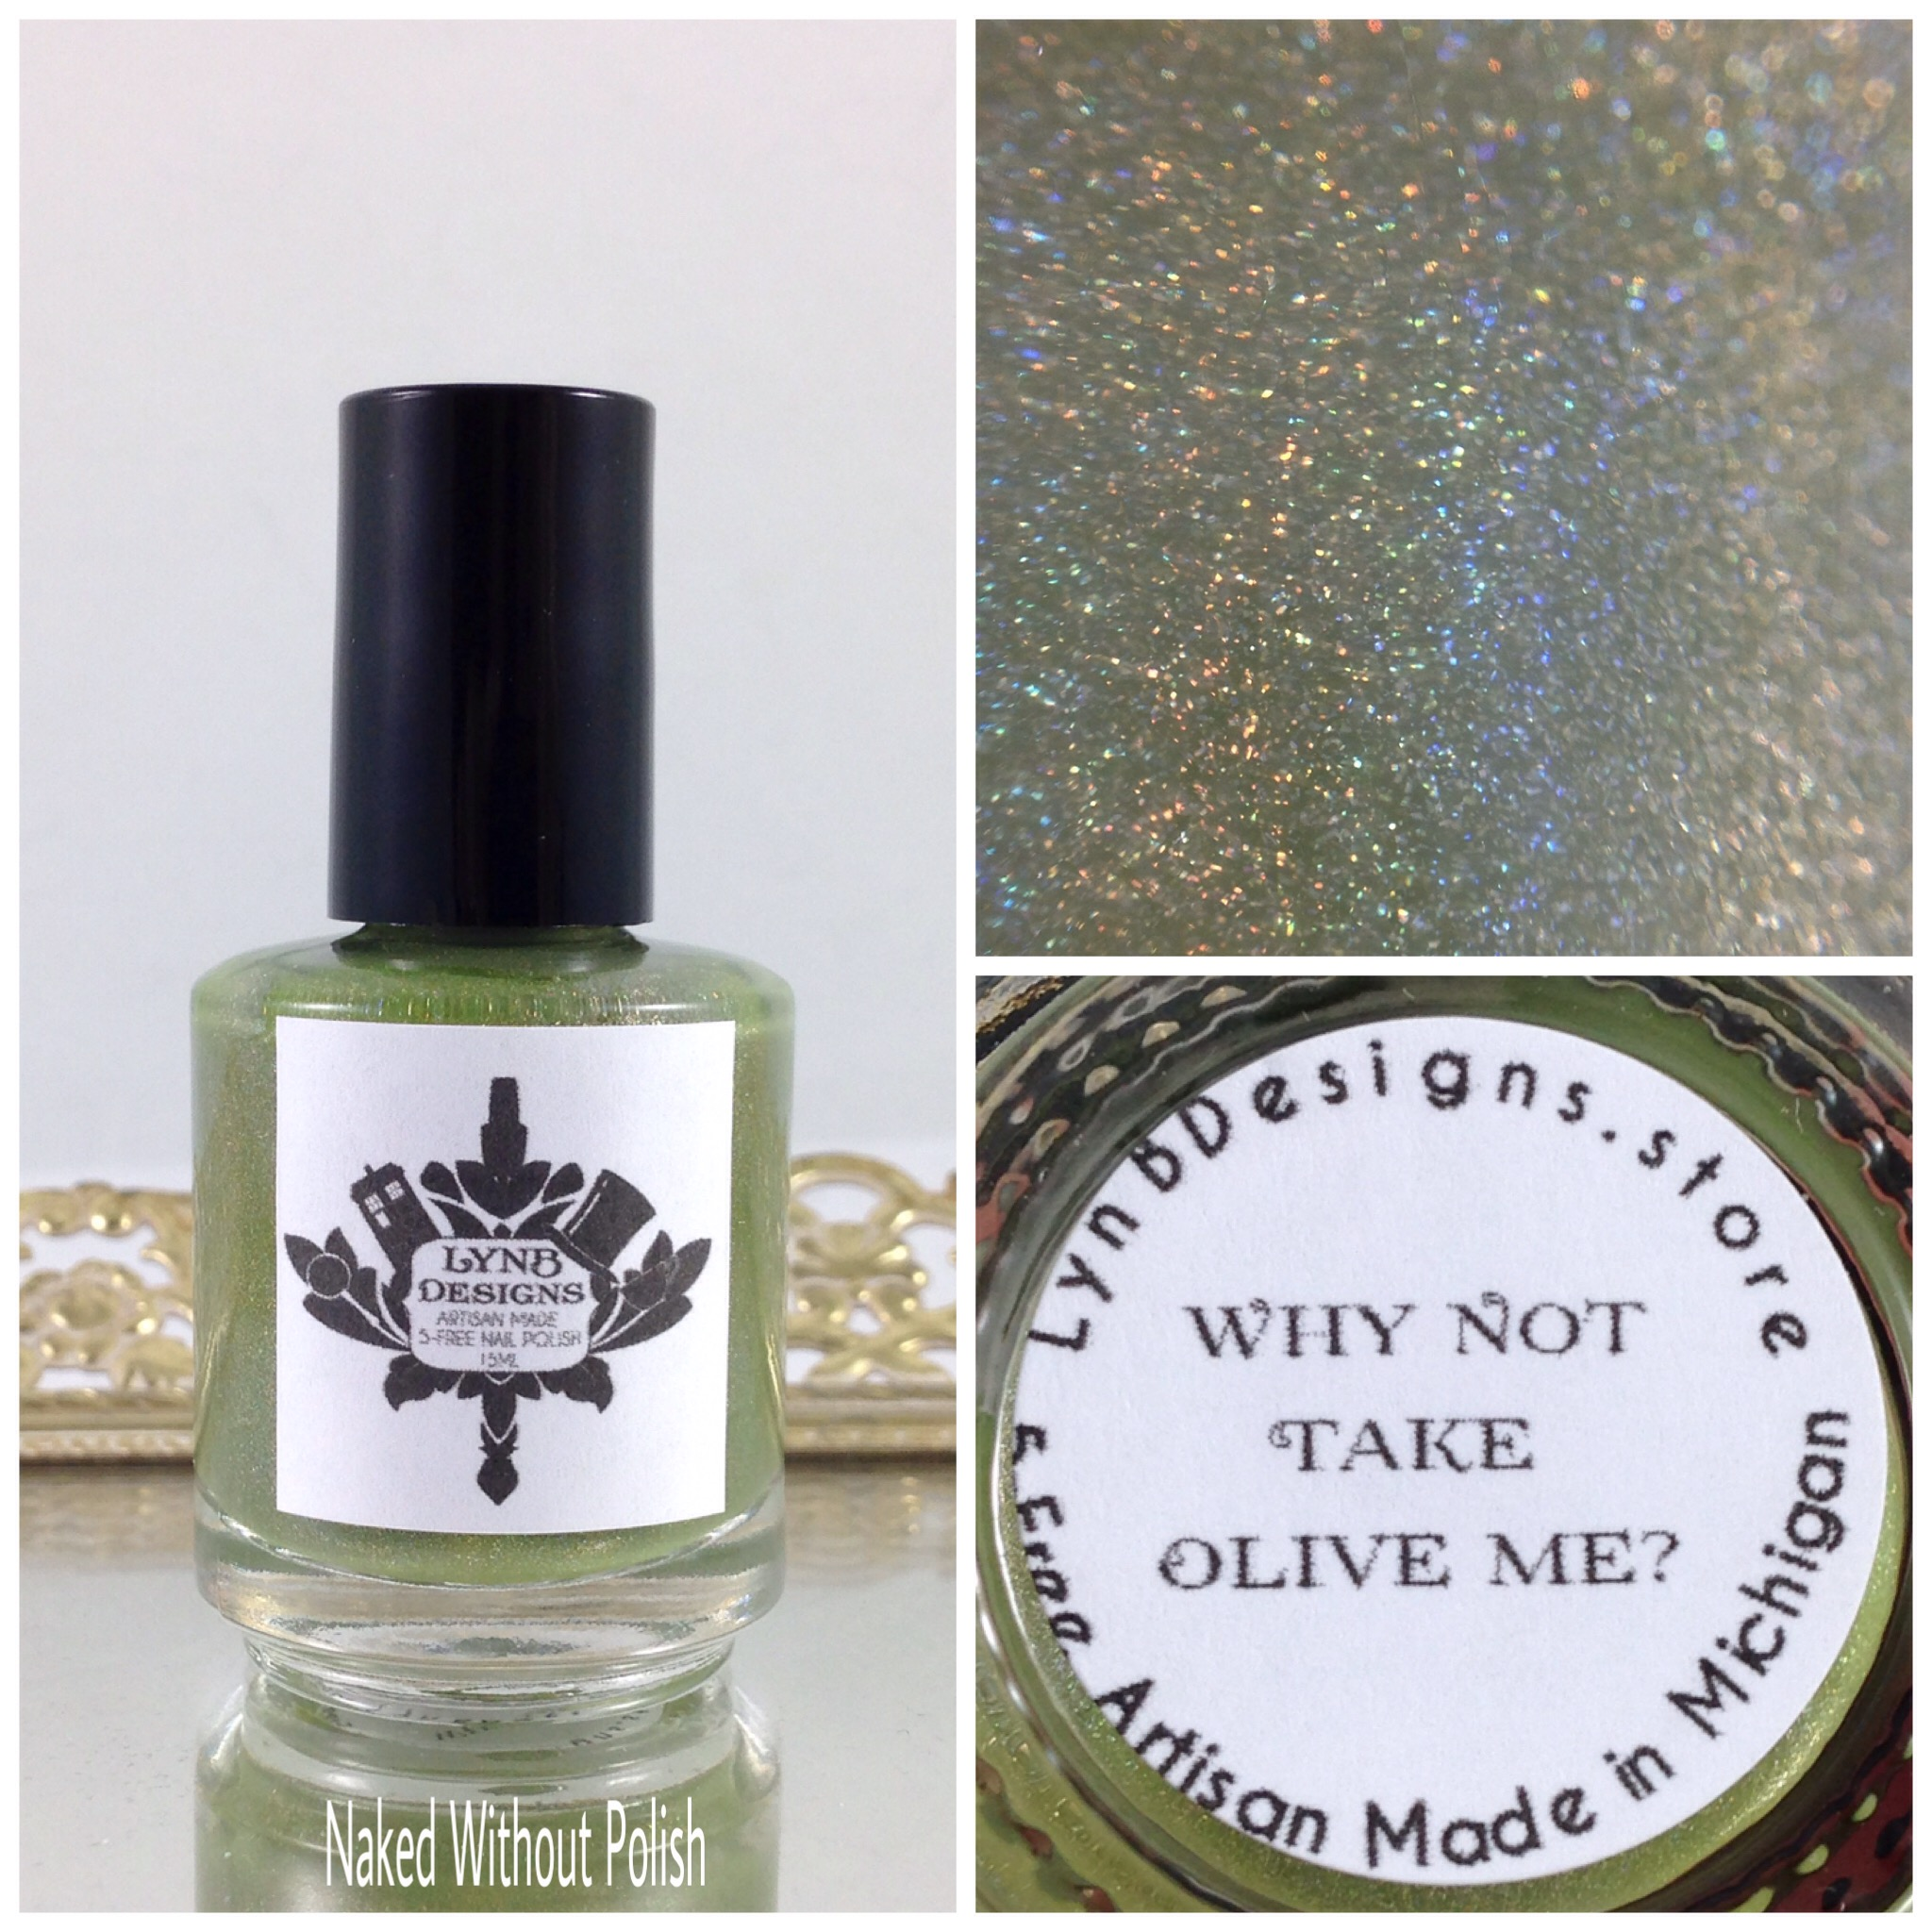 LynBDesigns-Why-Not-Take-Olive-Me-1